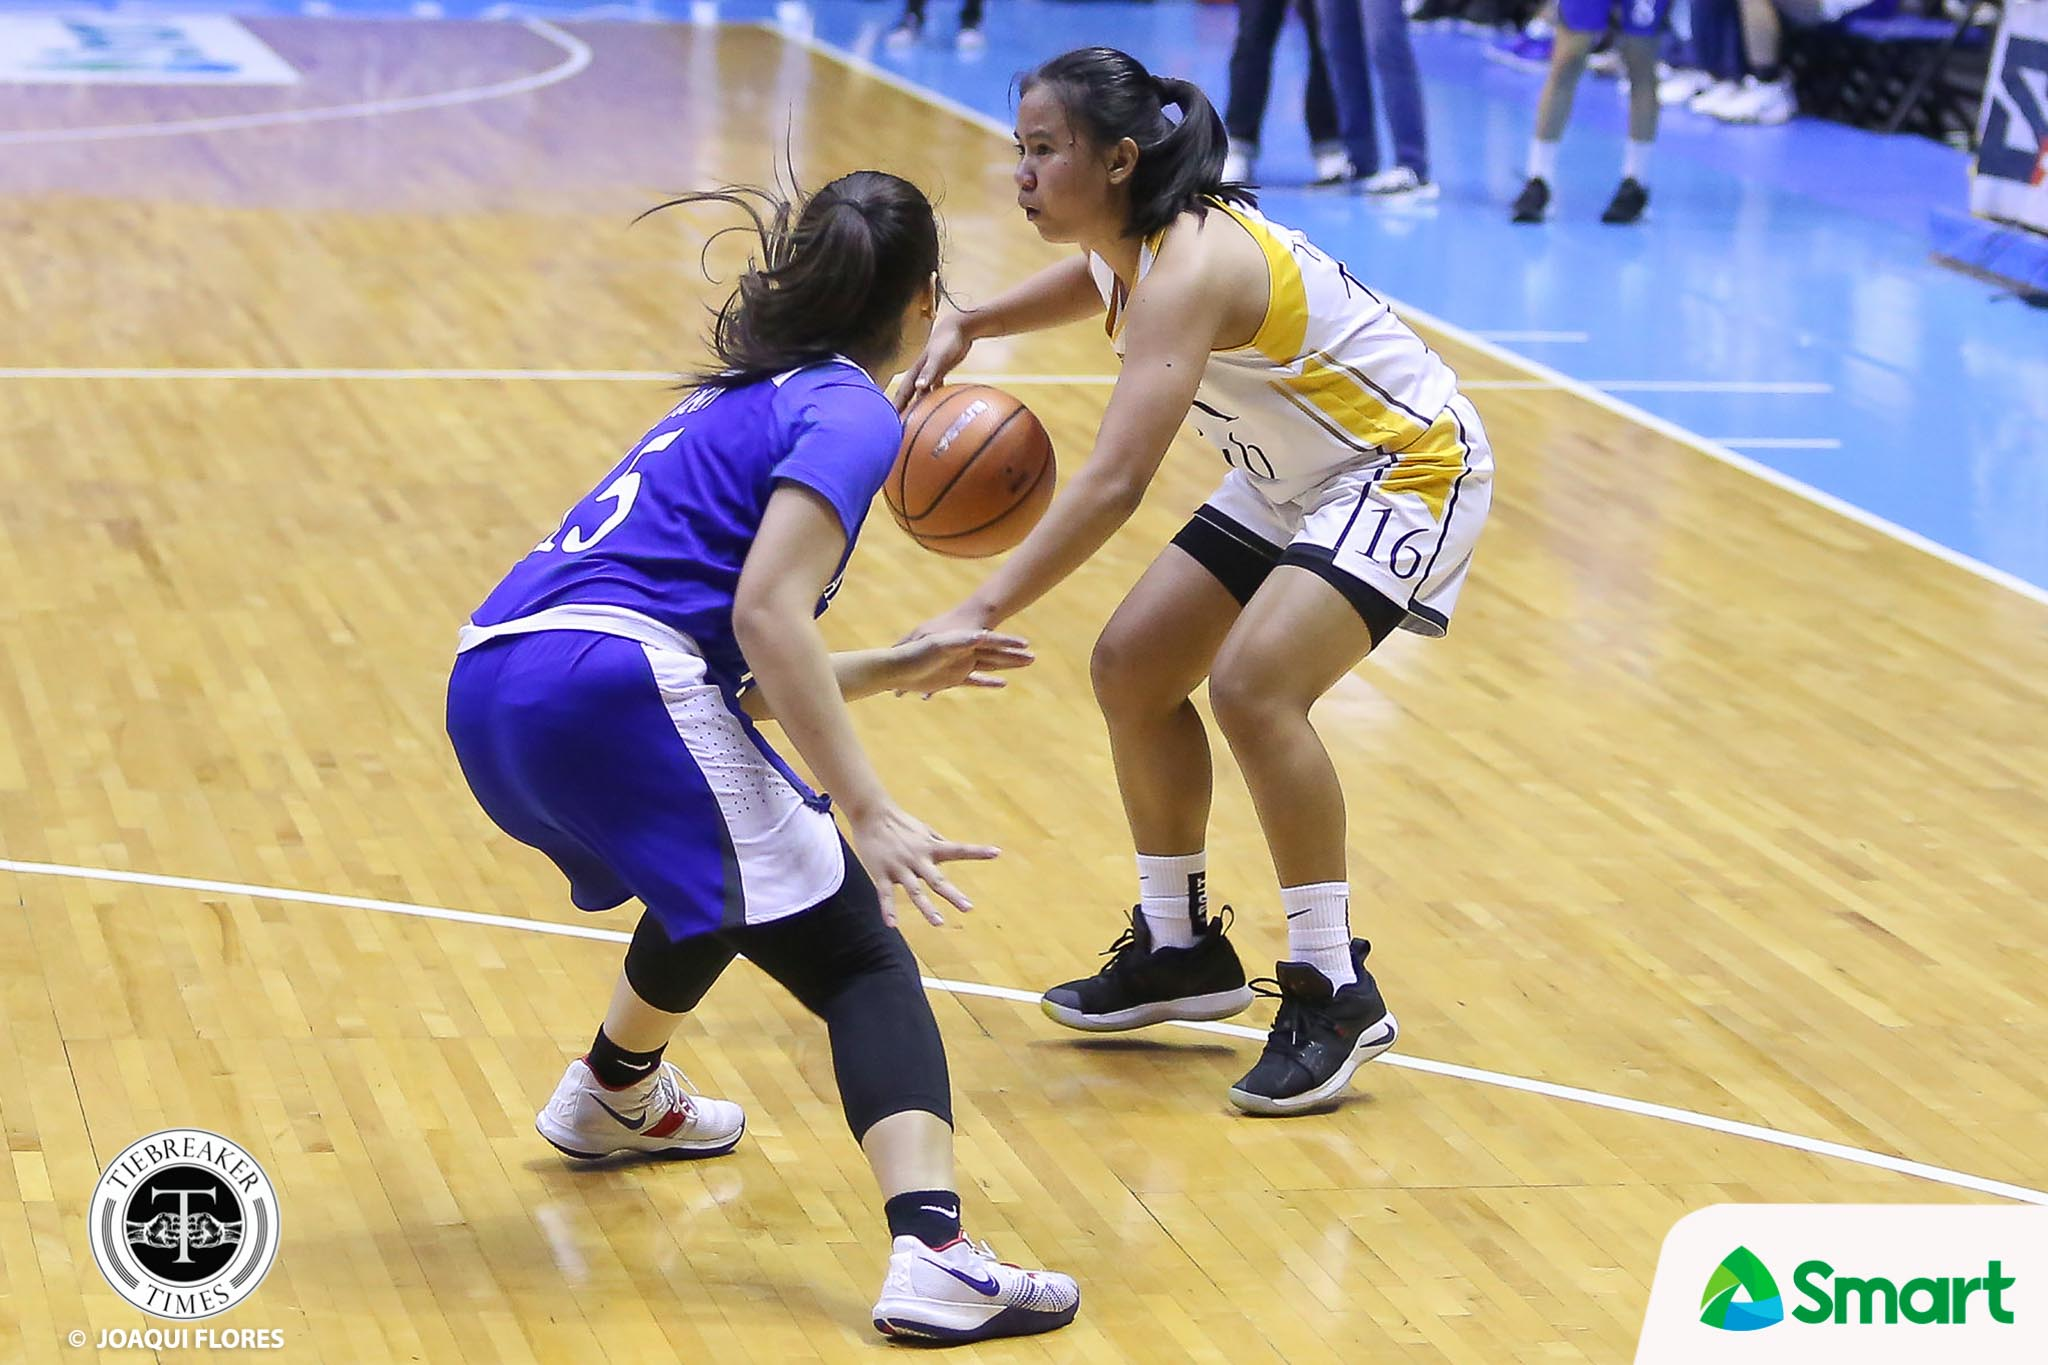 Tiebreaker Times Ana Tacatac knocks down eight triples as UST boots out Ateneo ADMU Basketball News UAAP UST  UST Women's Basketball UAAP Season 81 Women's Basketball UAAP Season 81 Tantoy Ferrer Sai Larosa Jollina Go John Flores Haydee Ong Grace Irebu Ateneo Women's Basketball Ana Tacatac